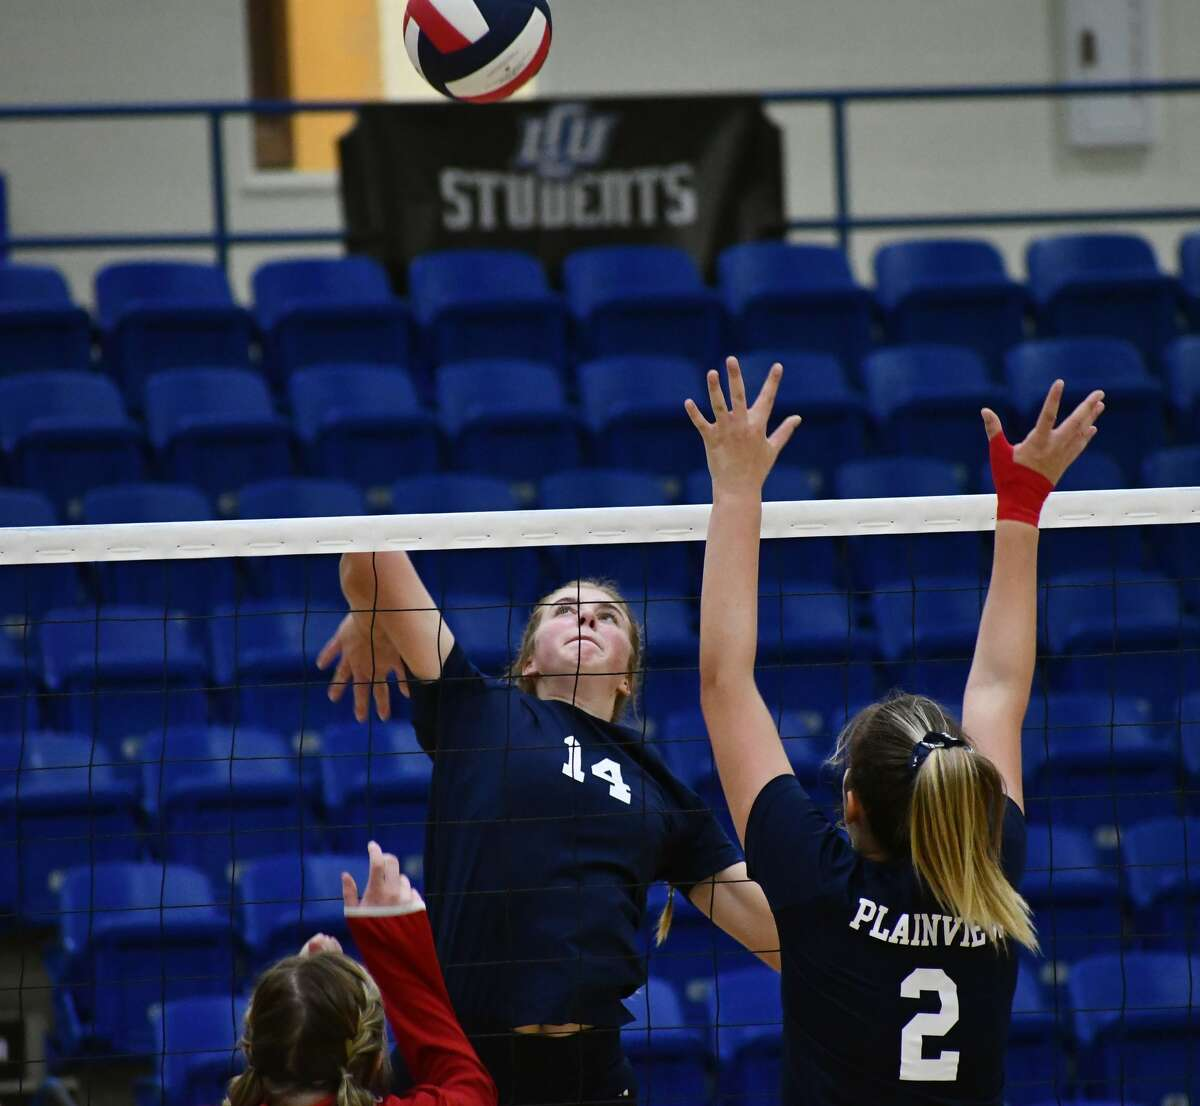 Plainview concluded its season with a 3-0 loss to Lubbock-Cooper in a Class 5A bi-district championship volleyball match on Nov. 21, 2020 in the Rip Griffin Center at Lubbock Christian University in Lubbock.